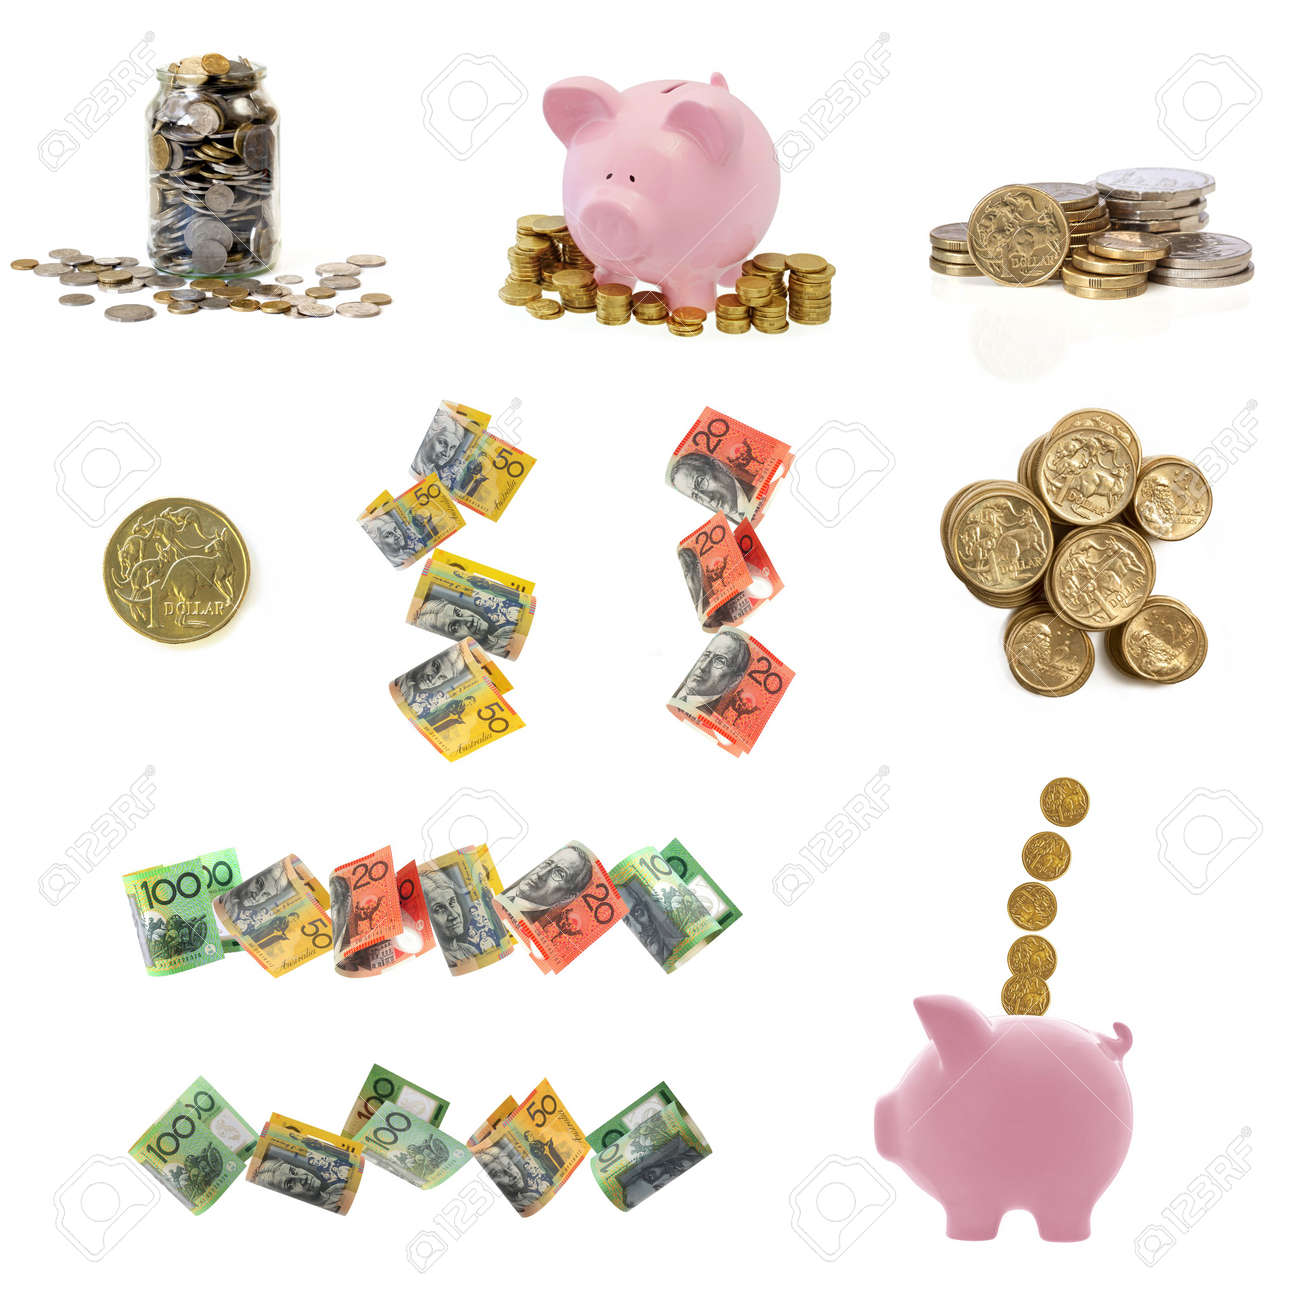 Collection of Australian money images, isolated on white. Stock Photo - 6196739